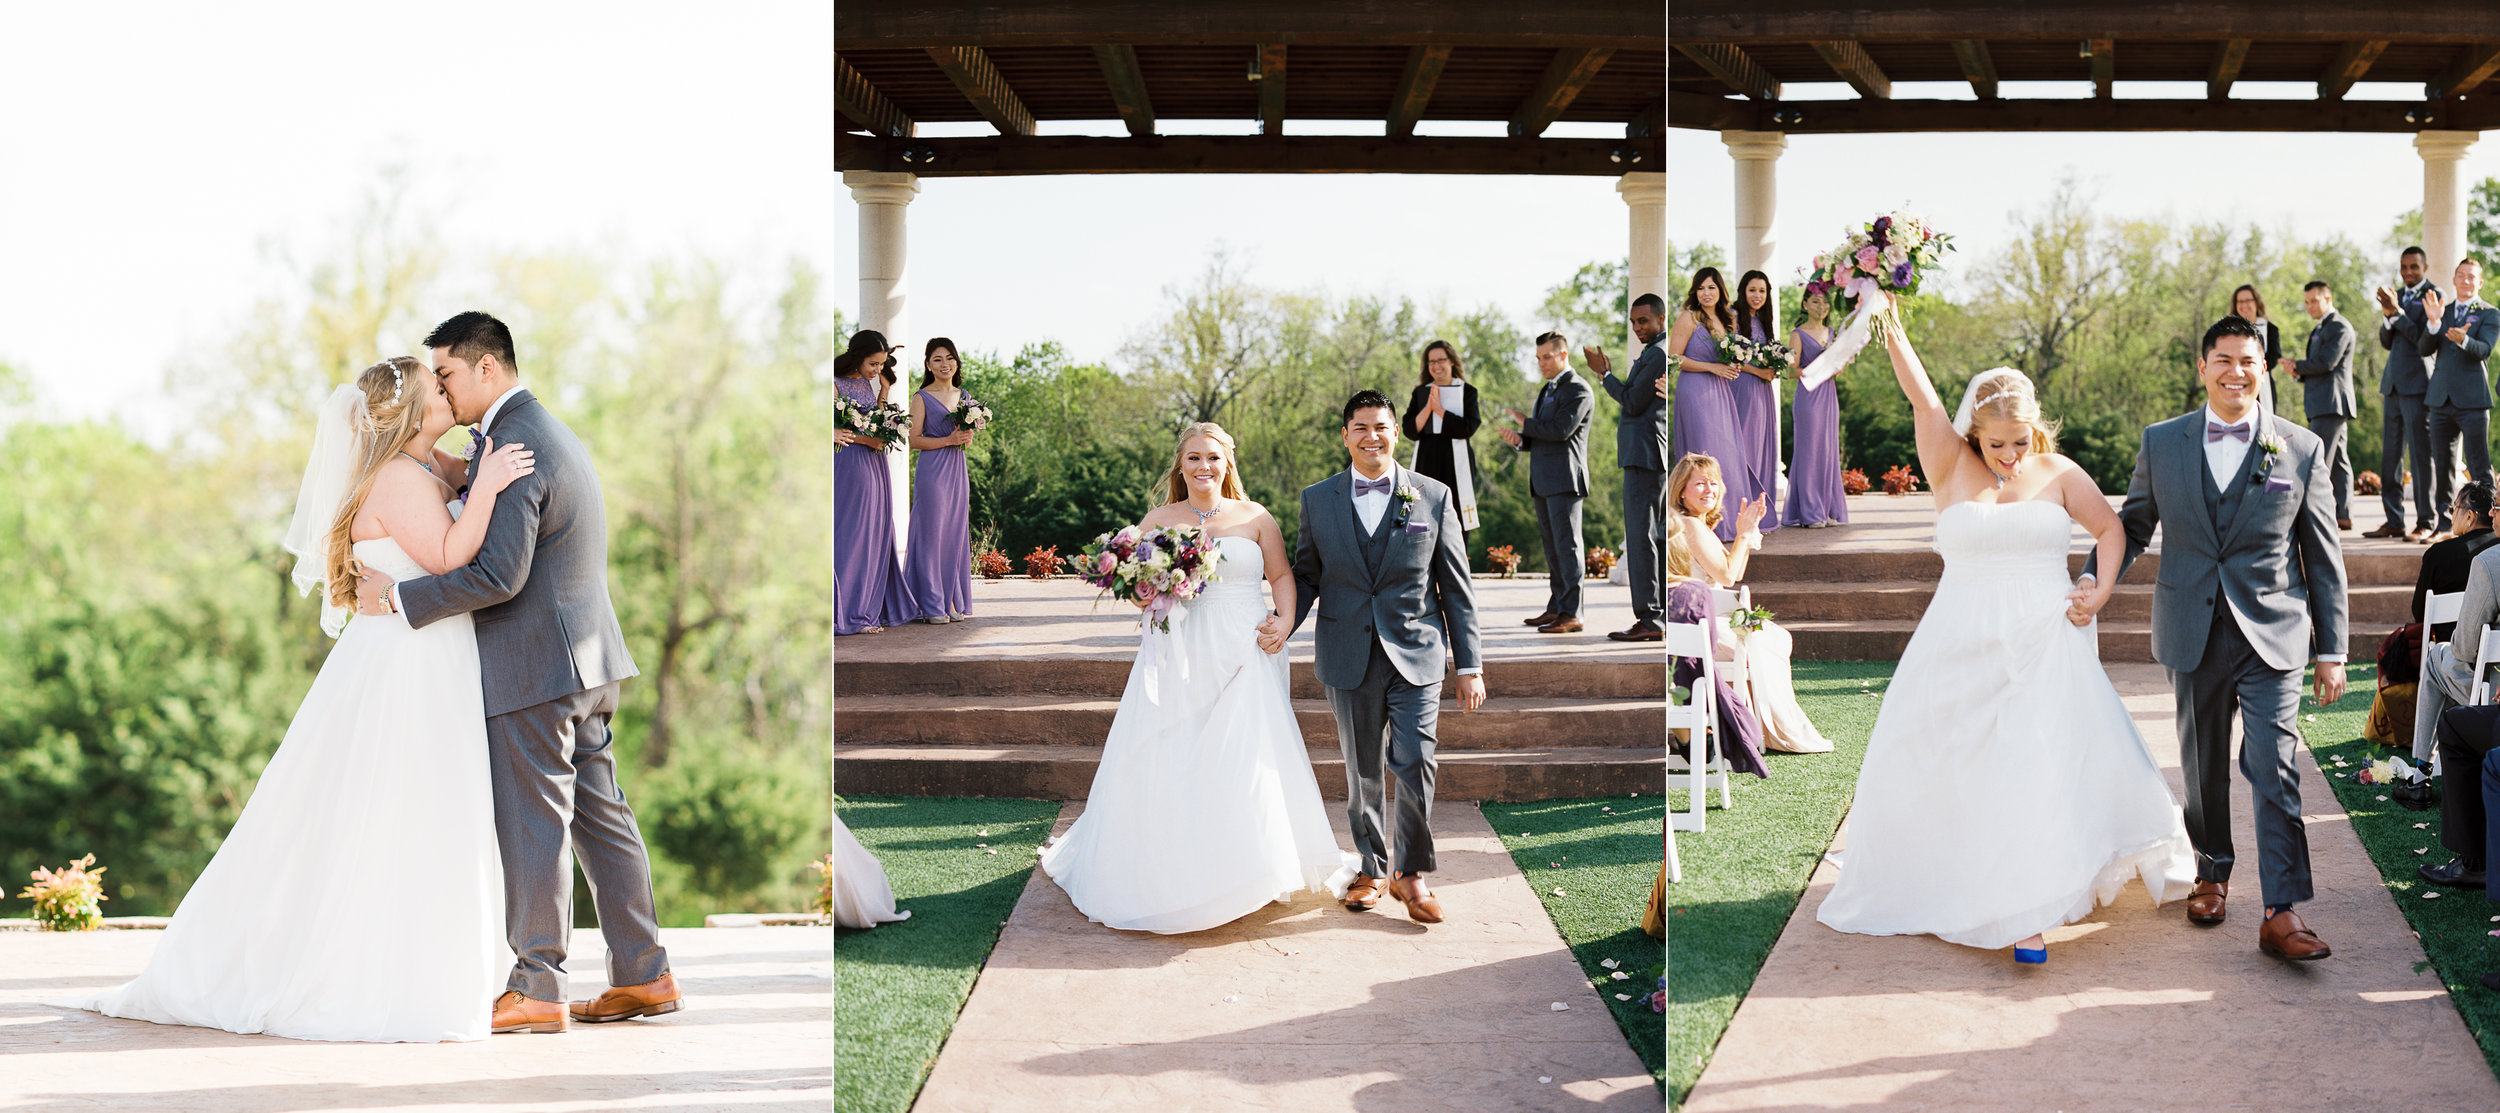 Whitney & Nathan Preview-11.jpg